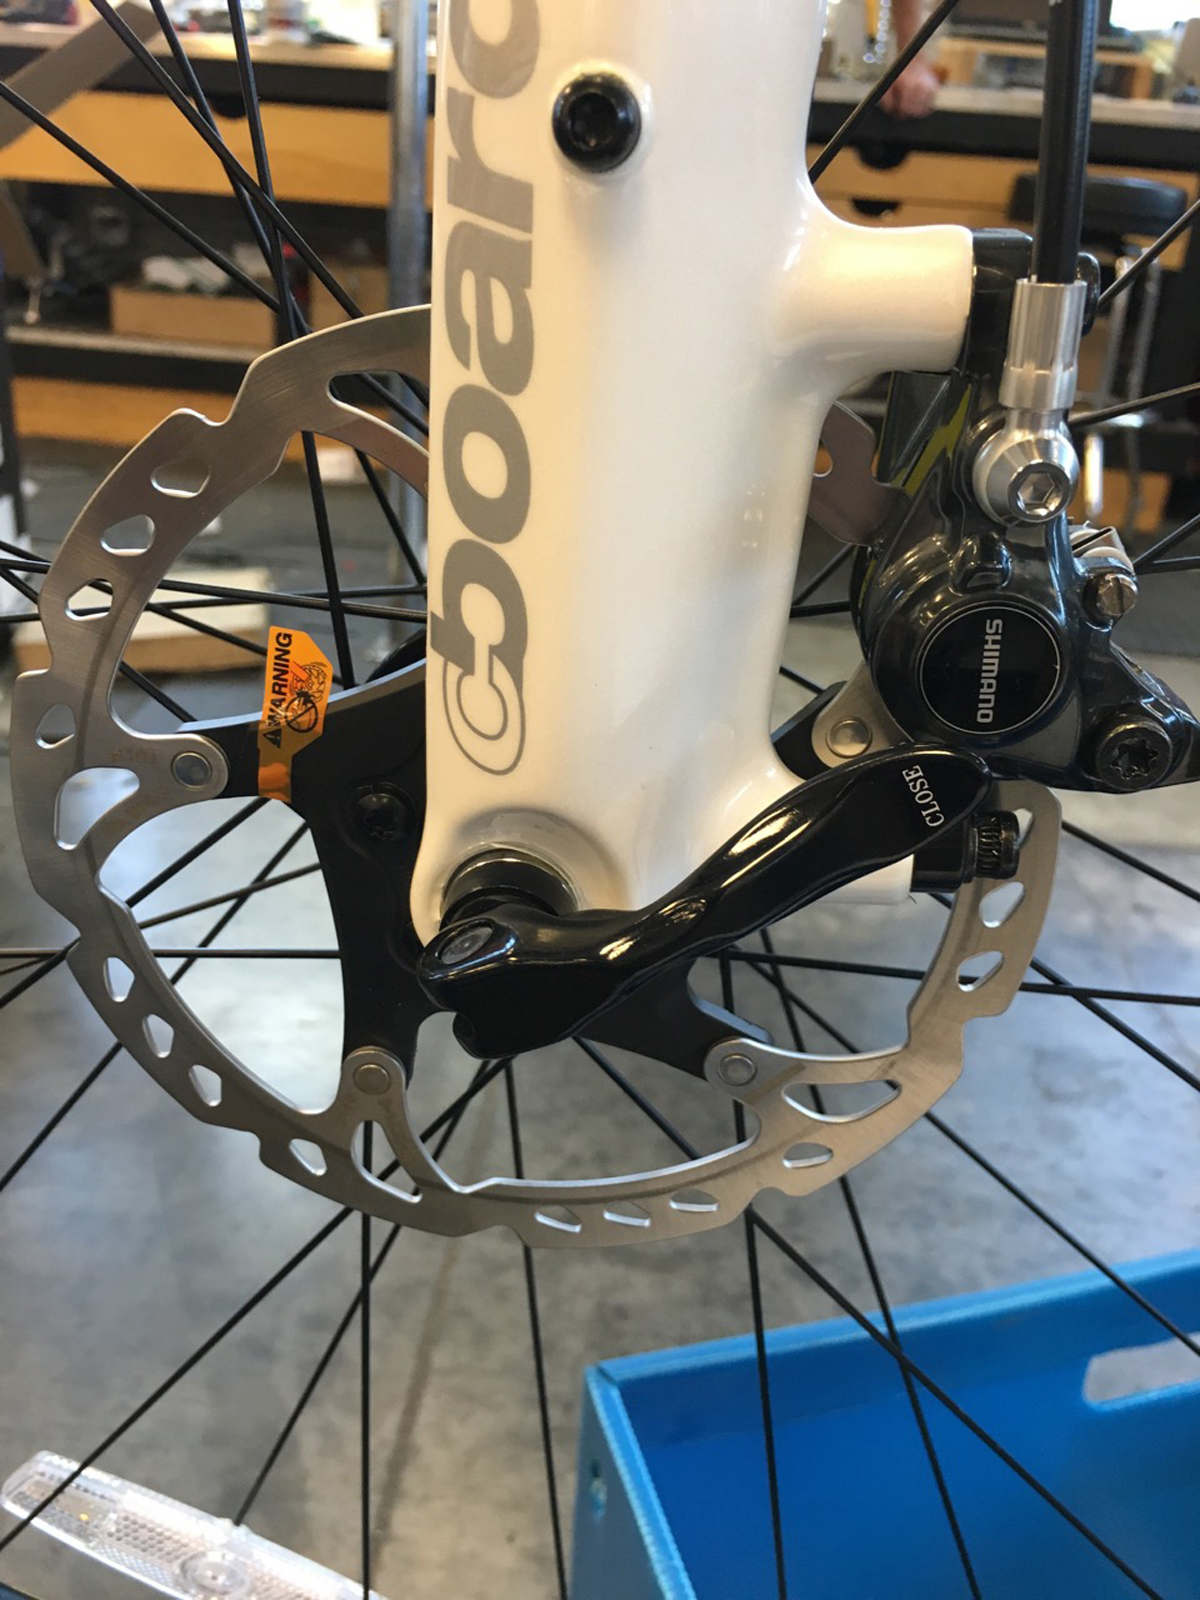 Road disc brakes require a different design for the front fork.